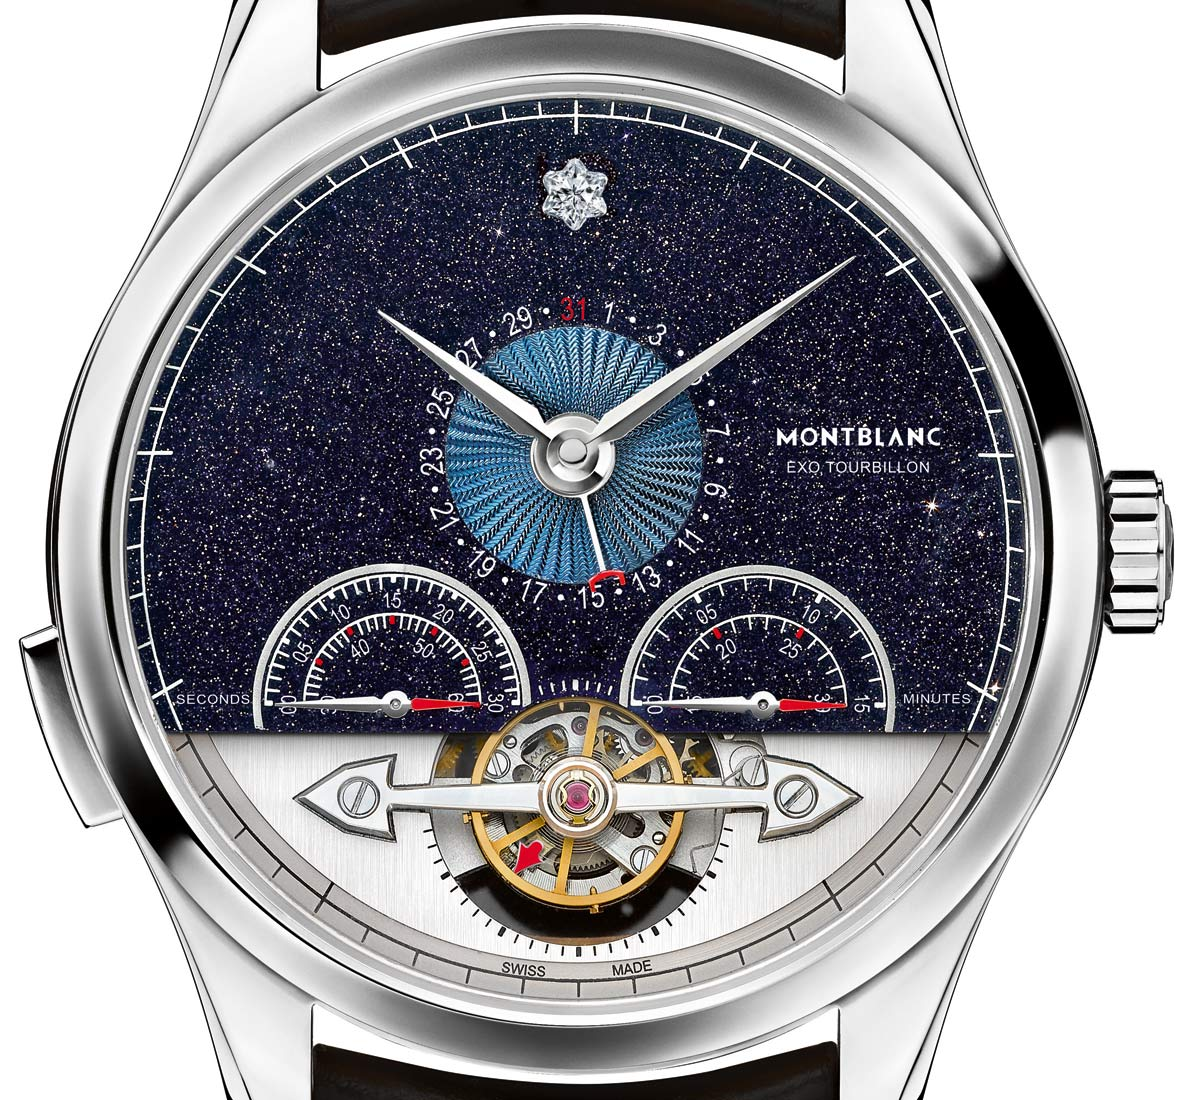 Montblanc Heritage Vasco Da Gama Montblanc S Vasco Da Gama Inspired Timepiece Collection Cool Hunting